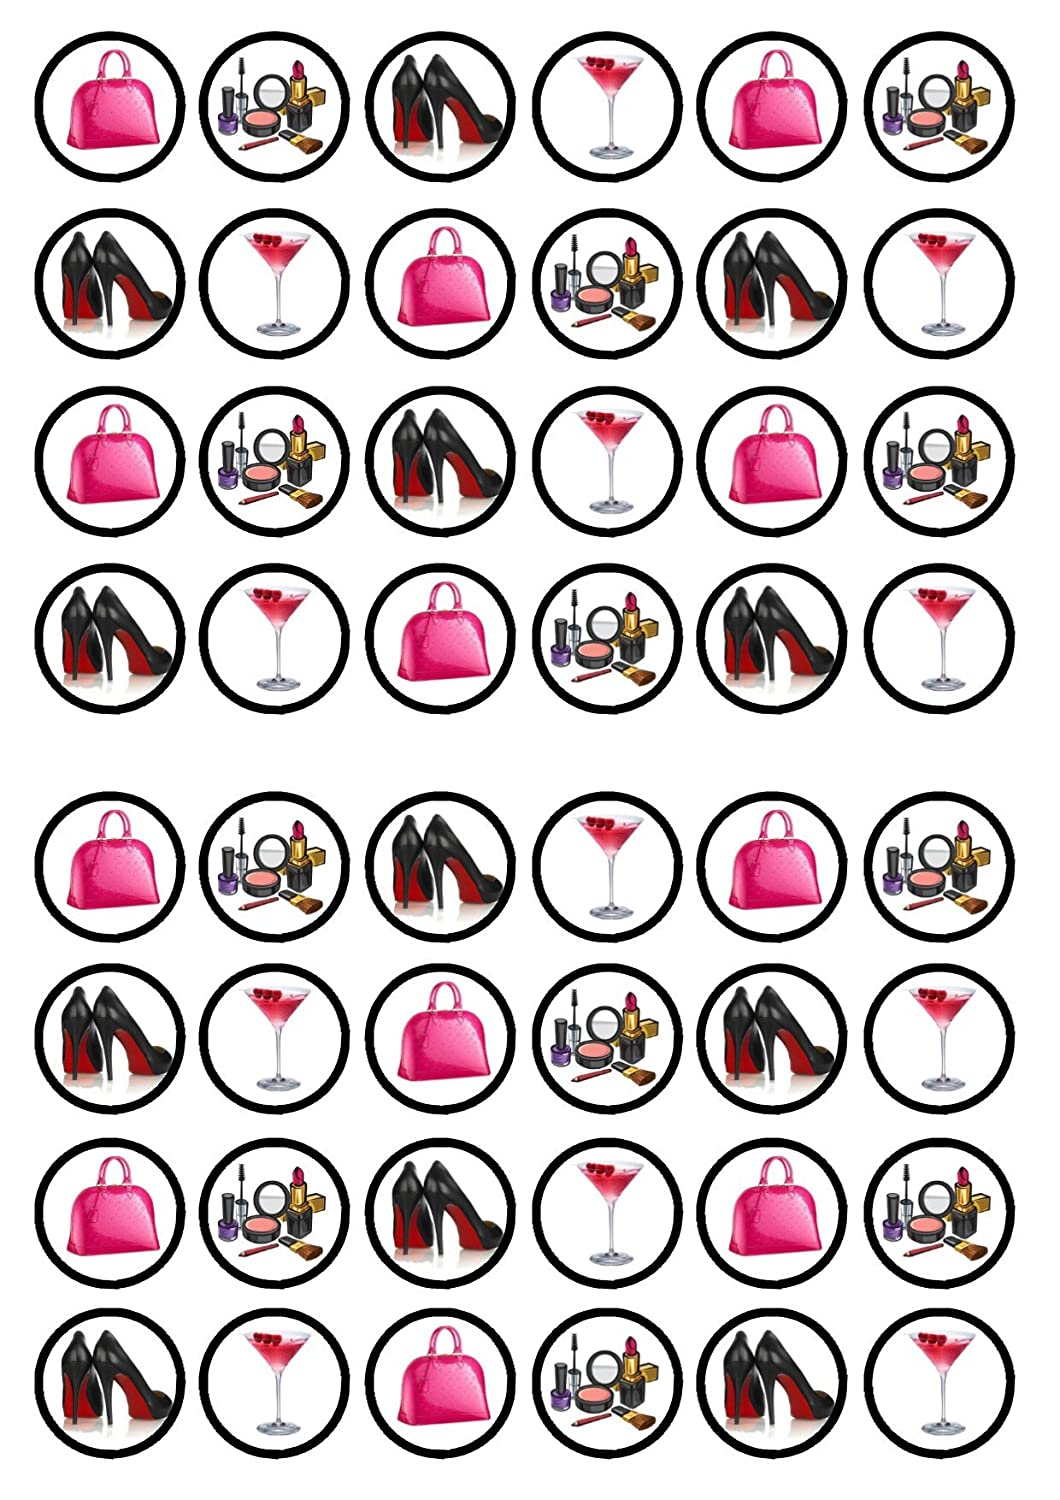 48 Bags Shoes Make Up Cocktails Edible PREMIUM THICKNESS SWEETENED VANILLA, Wafer Rice Paper Cupcake Toppers/Decorations